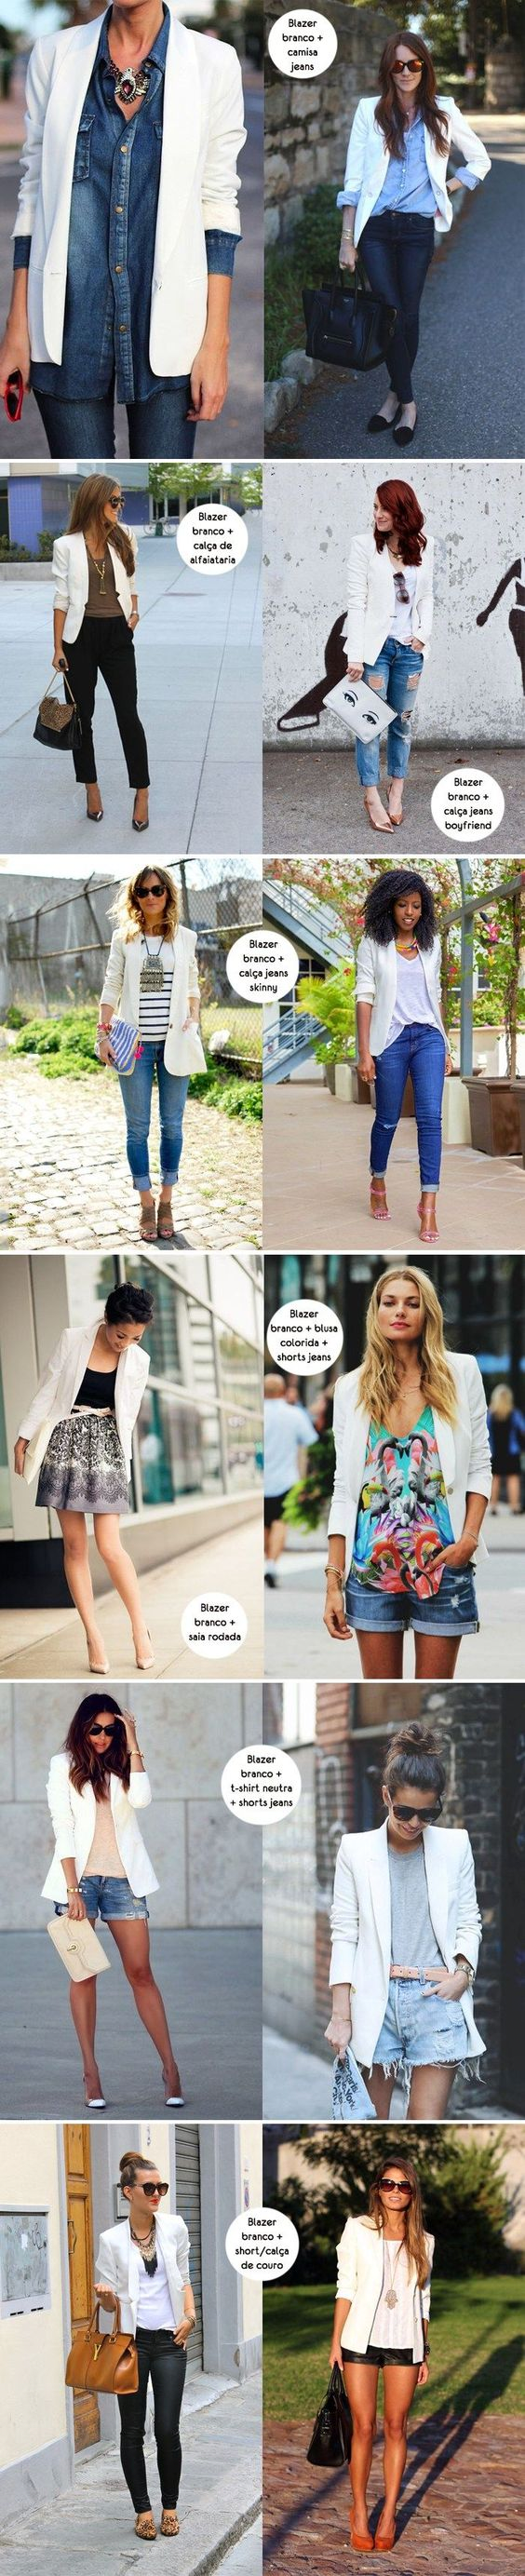 best images about blazers on pinterest